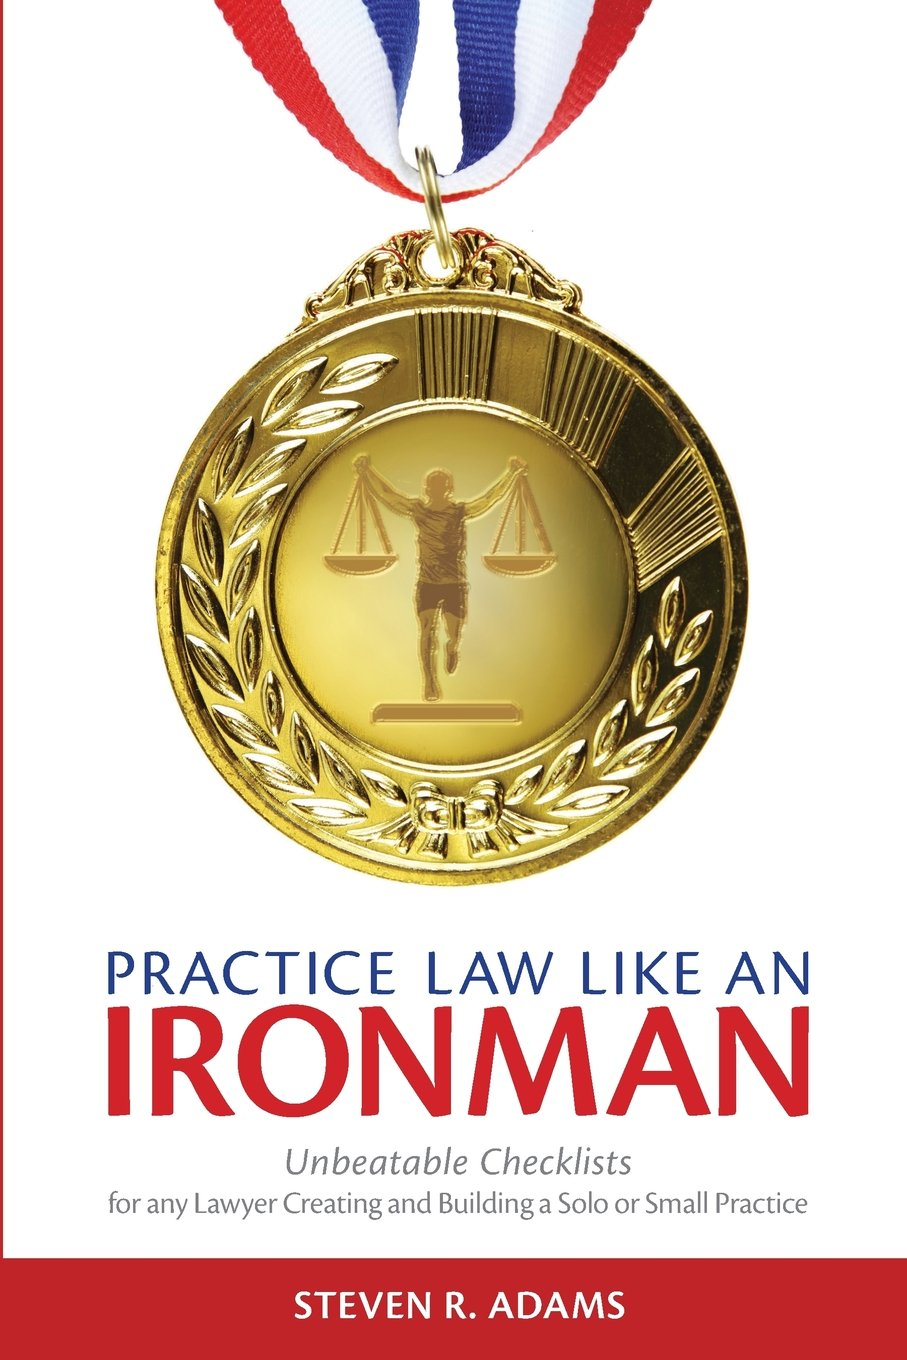 Download Practice Law Like An Ironman: Unbeatable Checklists for any Lawyer Creating and Building a Solo or Small Practice pdf epub